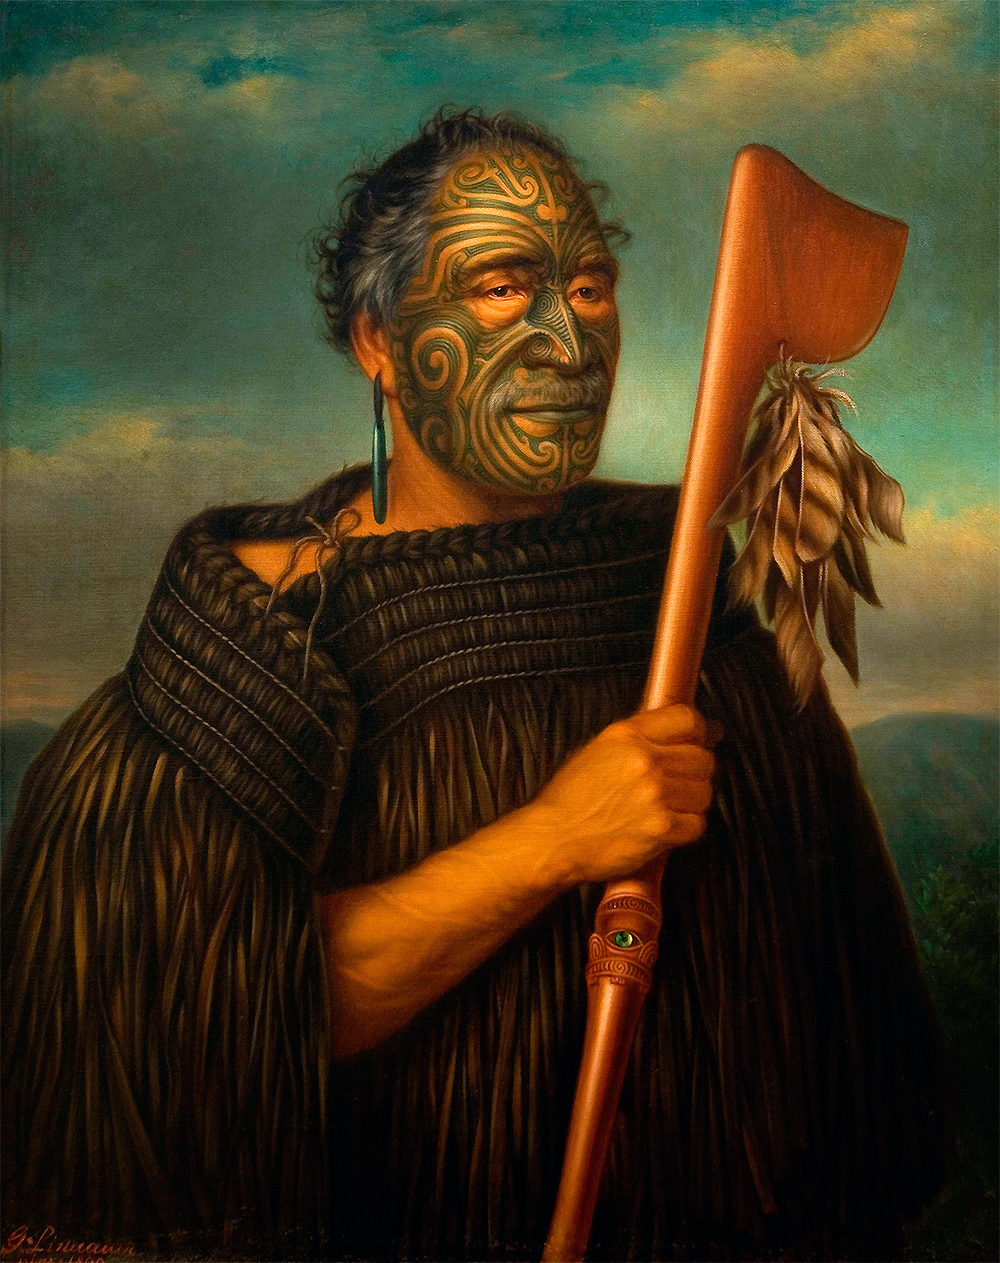 4112d6b87 Gottfried Lindauer, Tamati Waka Nene, 1890, oil on canvas, 101.9 x 84.2